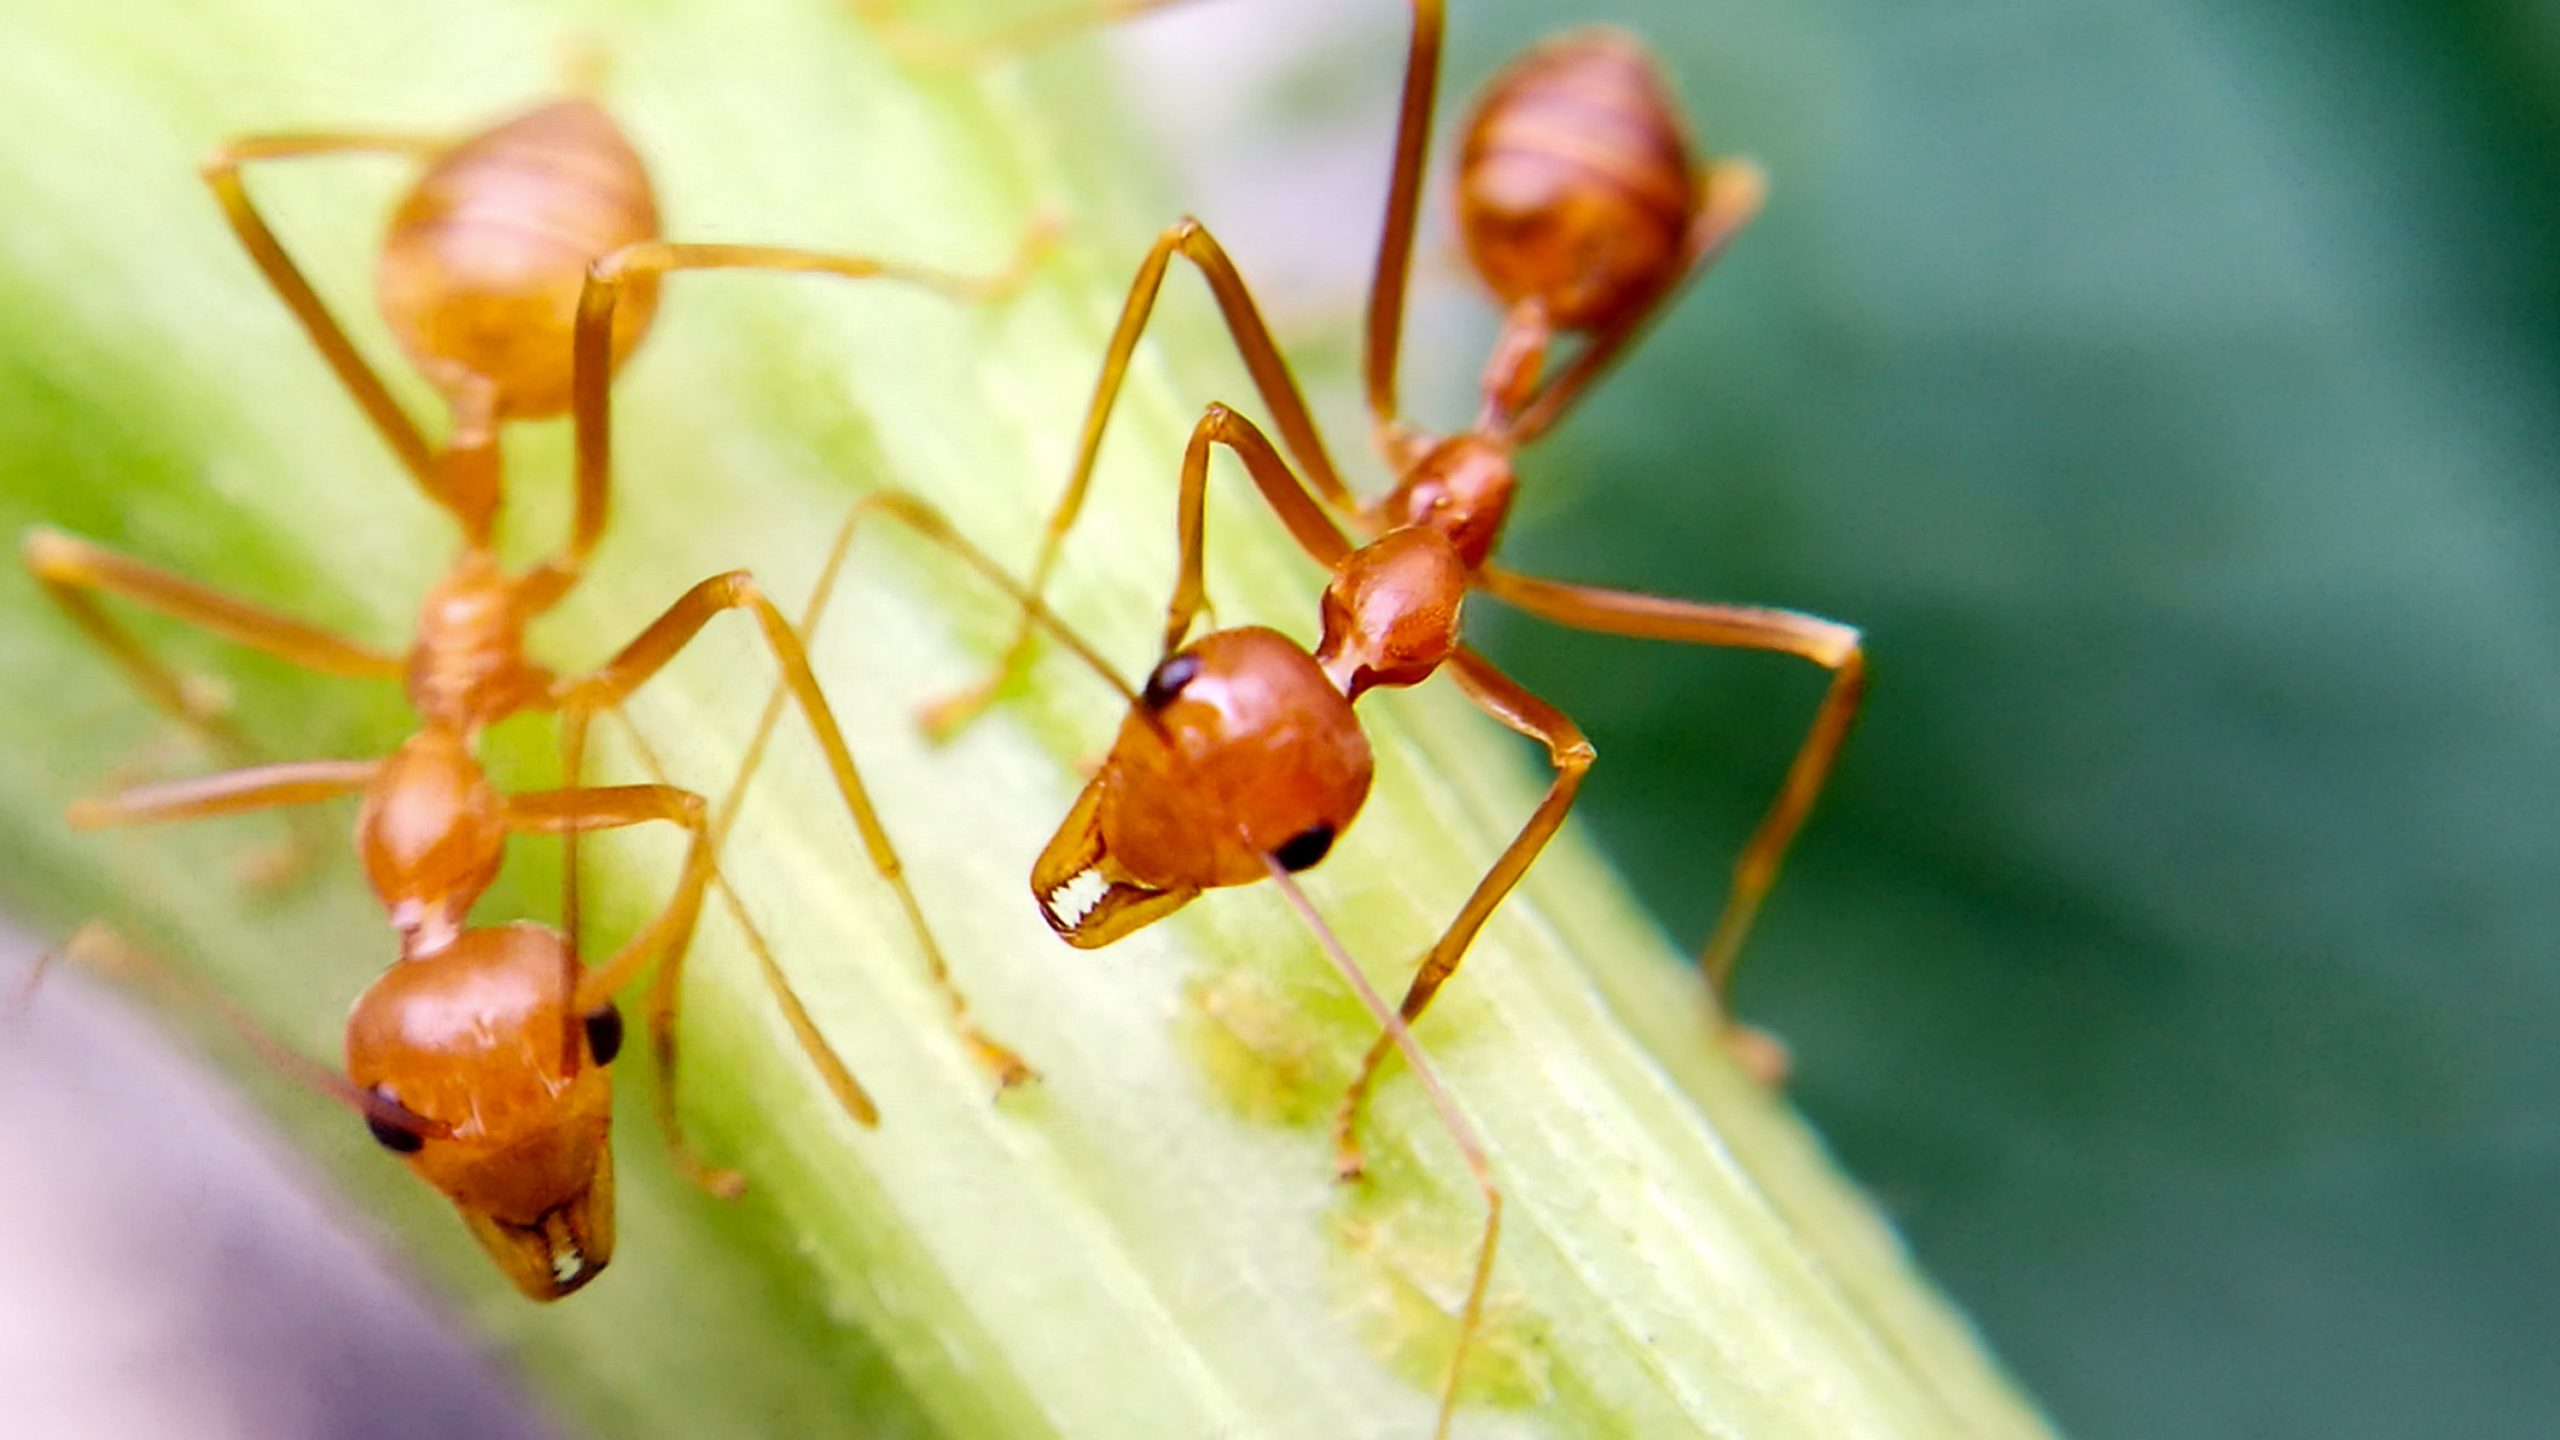 Does Salt Kill Ants - Image By nytimes